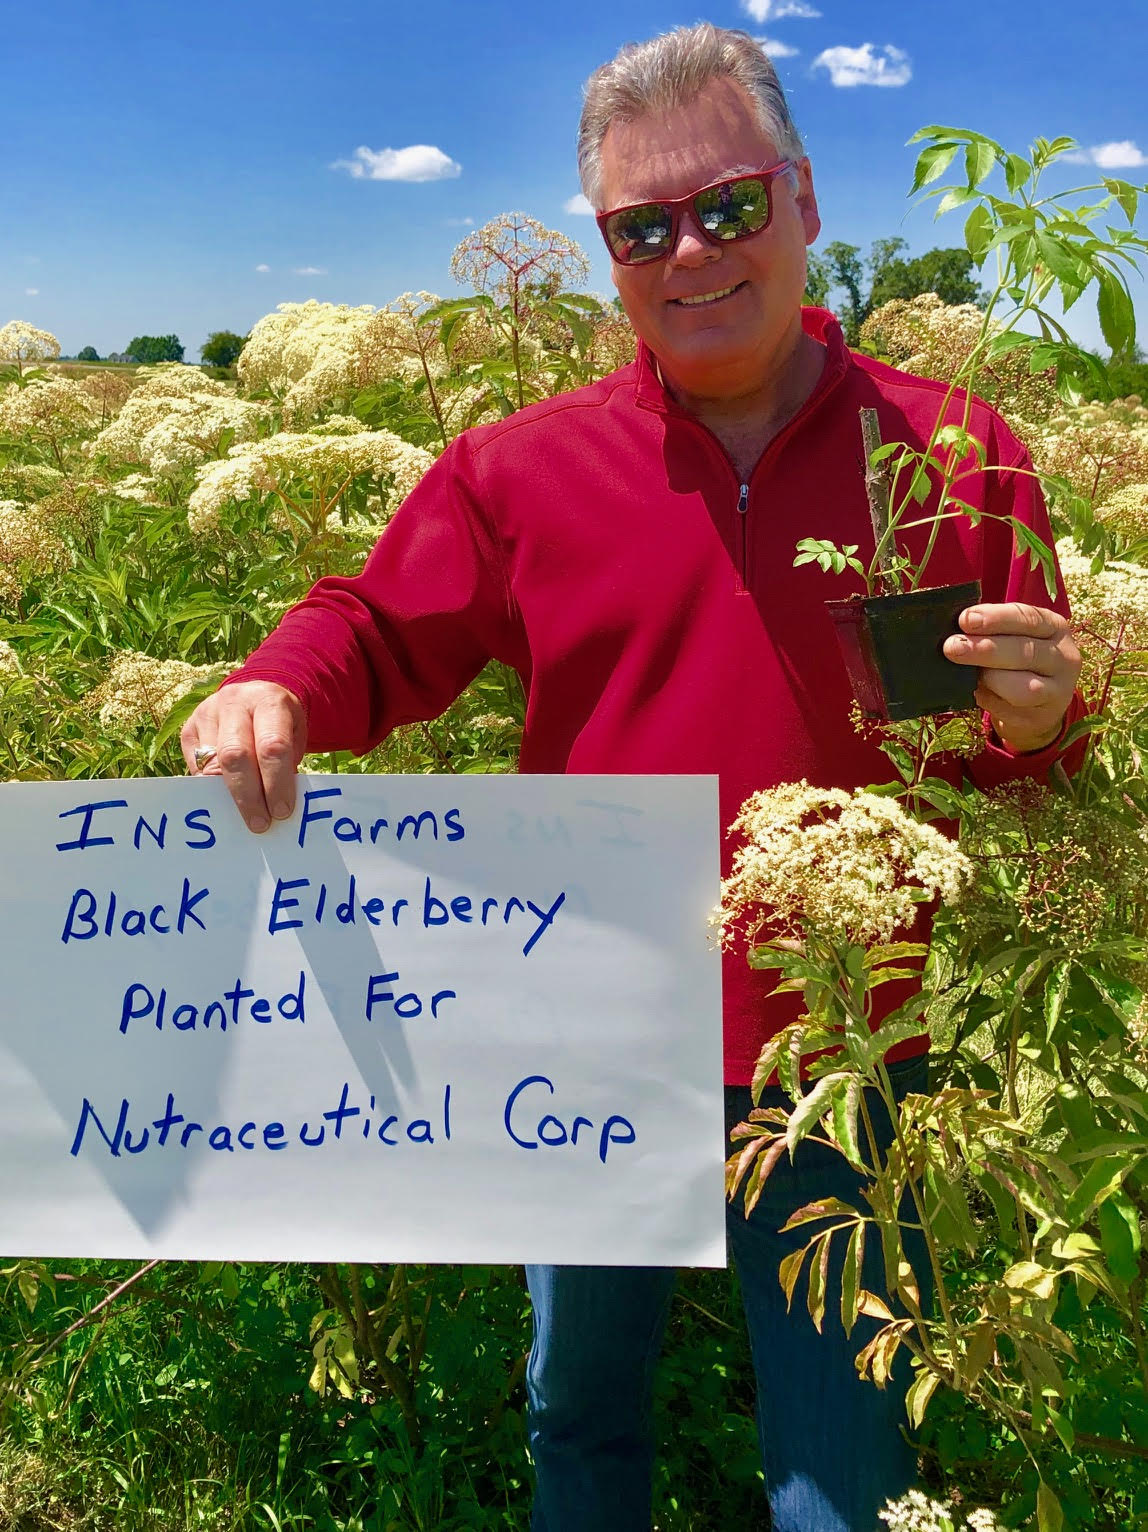 Plant-Elderberry-Nutraceutical-Corp.jpg